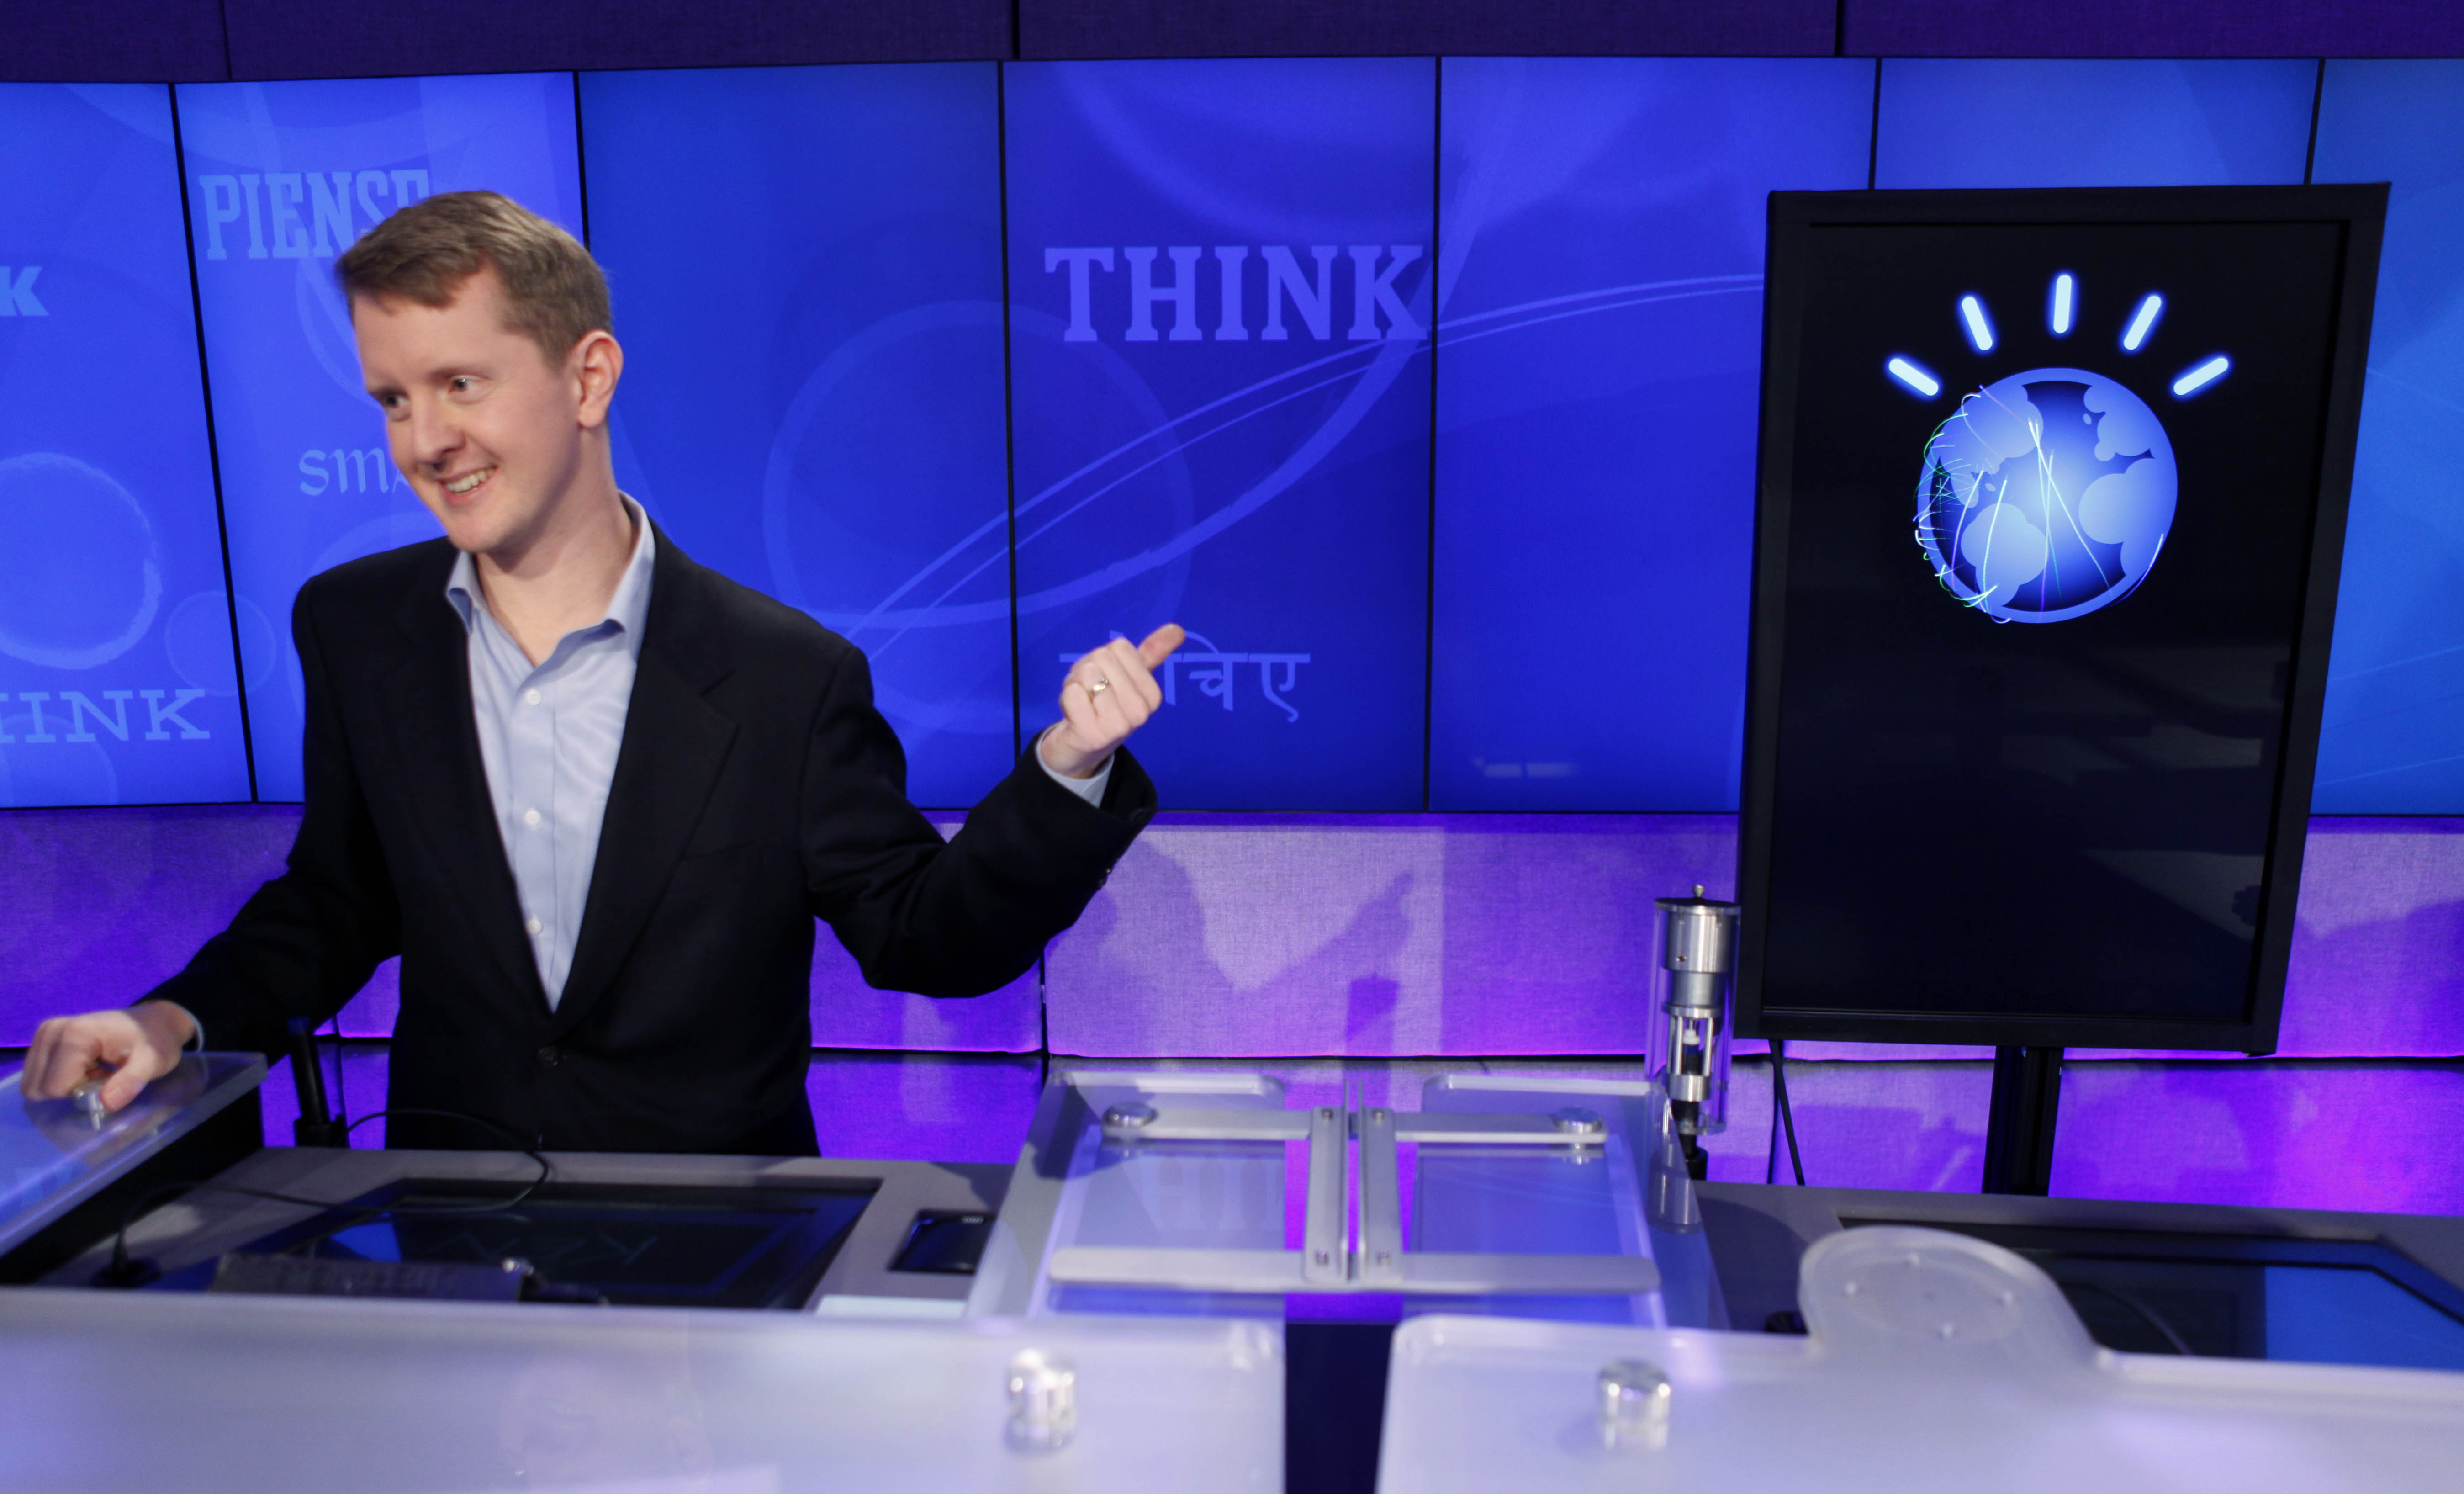 Ken Jennings' Past Tweets Mocking the Disabled Surface After 'Jeopardy' Guest Hosting Announcement